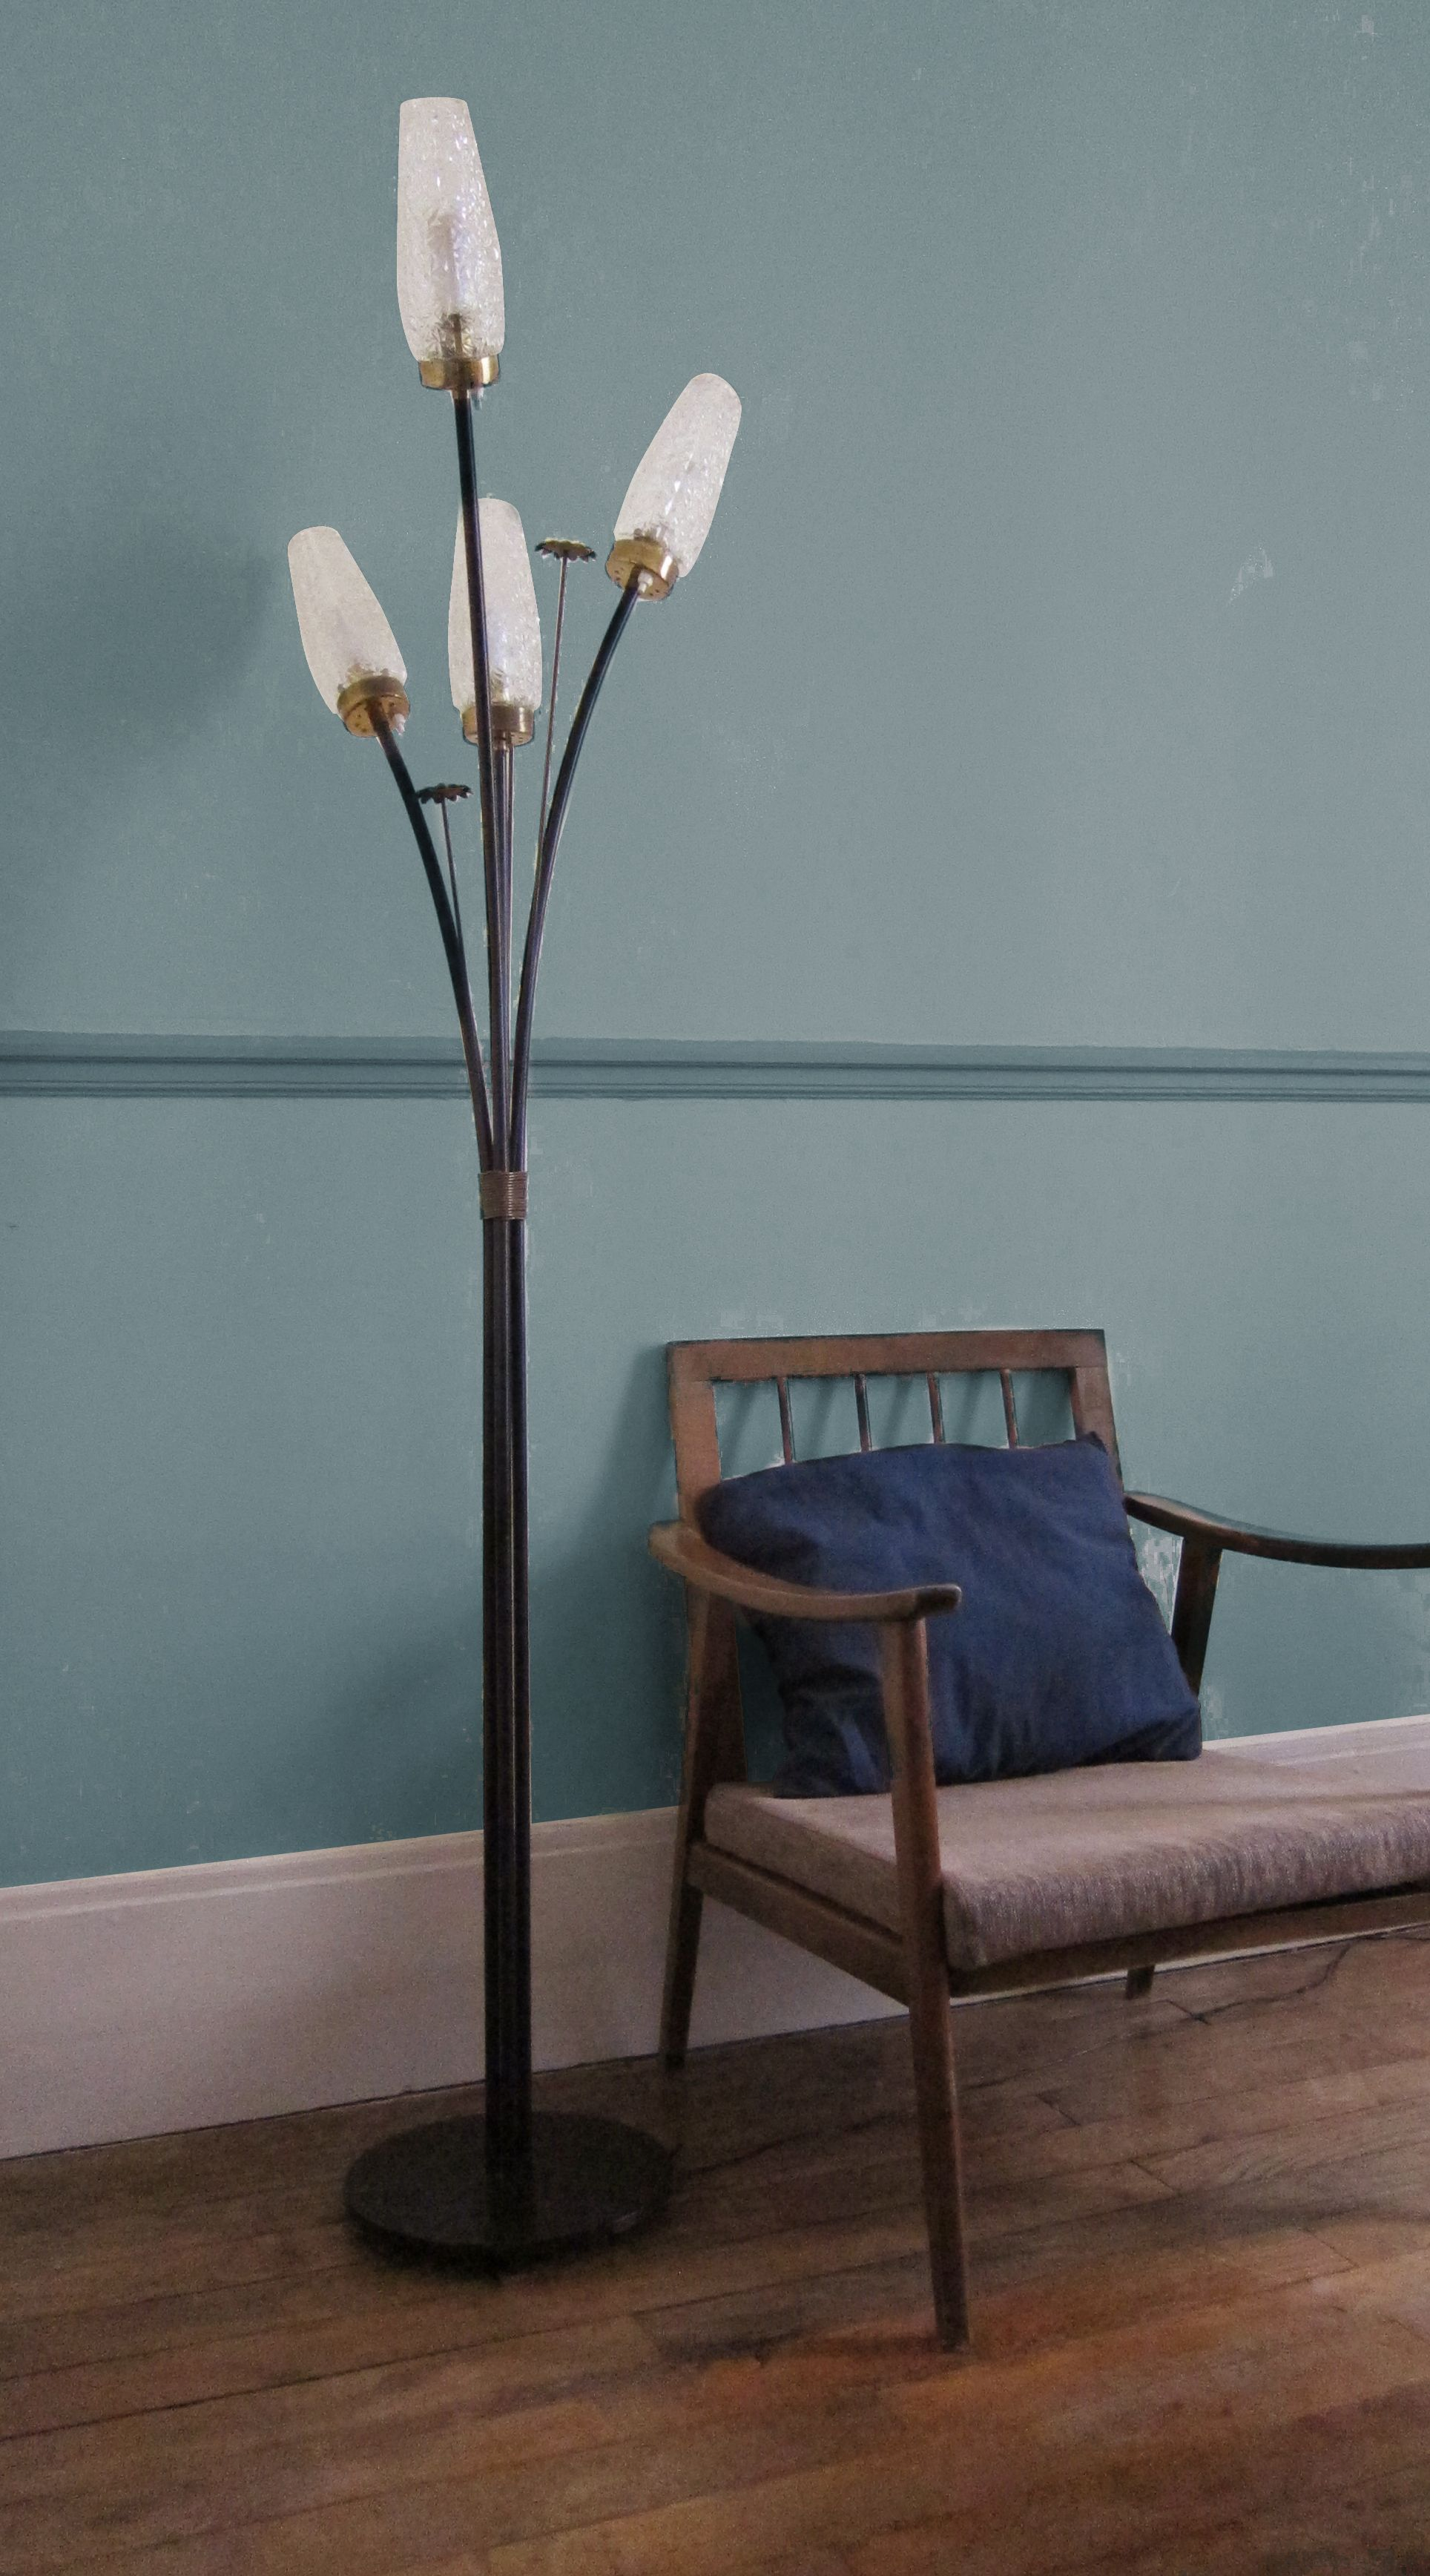 Délicieux Le Bon Coin Paris Decoration #2: I M Selling My 60u0027s Floor Lamp In Paris Here At Le Boin Coin Sigh!